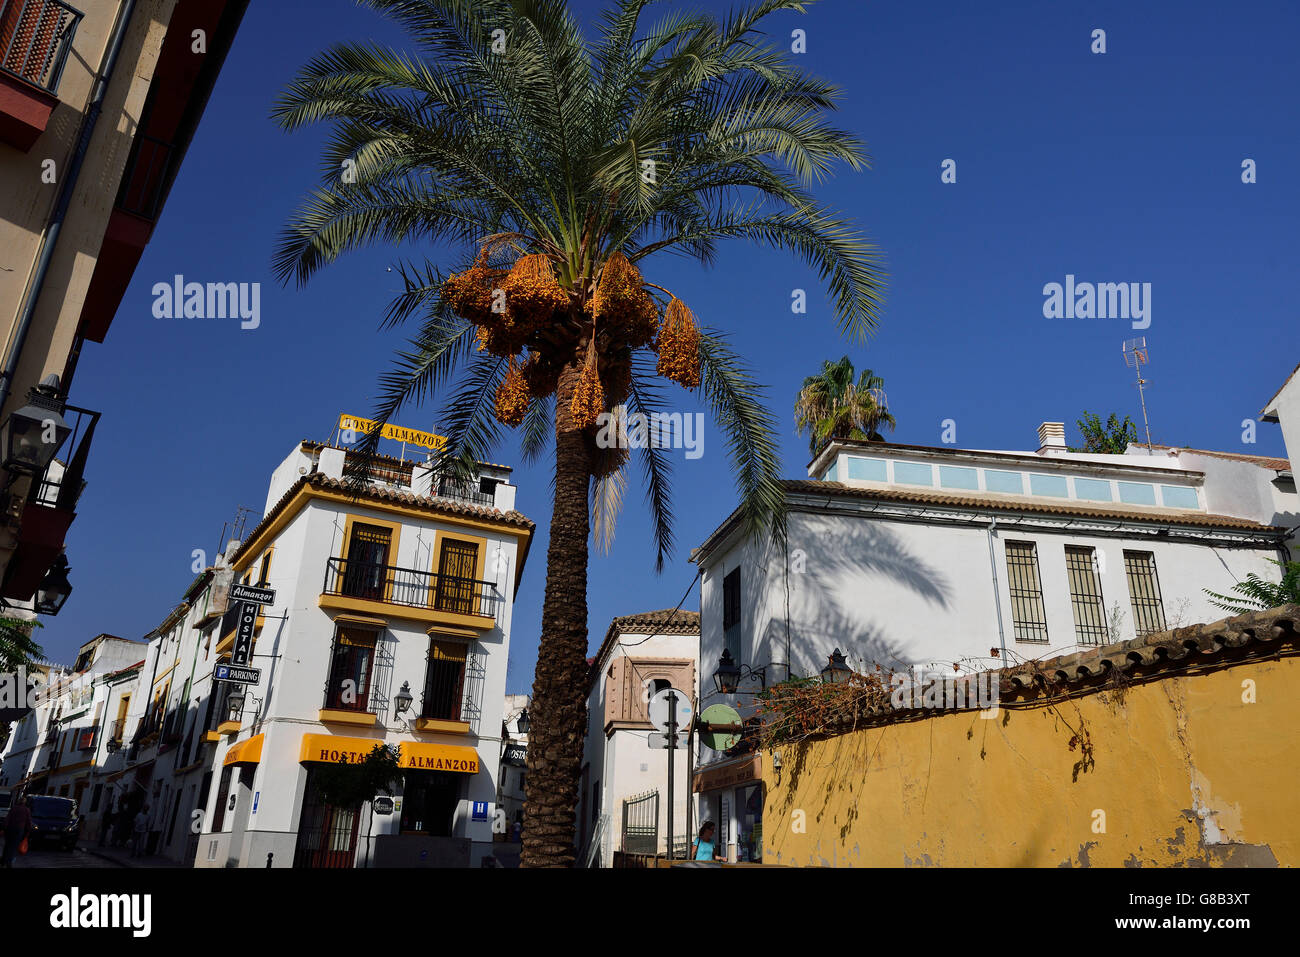 Calle Cardenal Gonzales, Cordoba, Andalusia, Spain - Stock Image